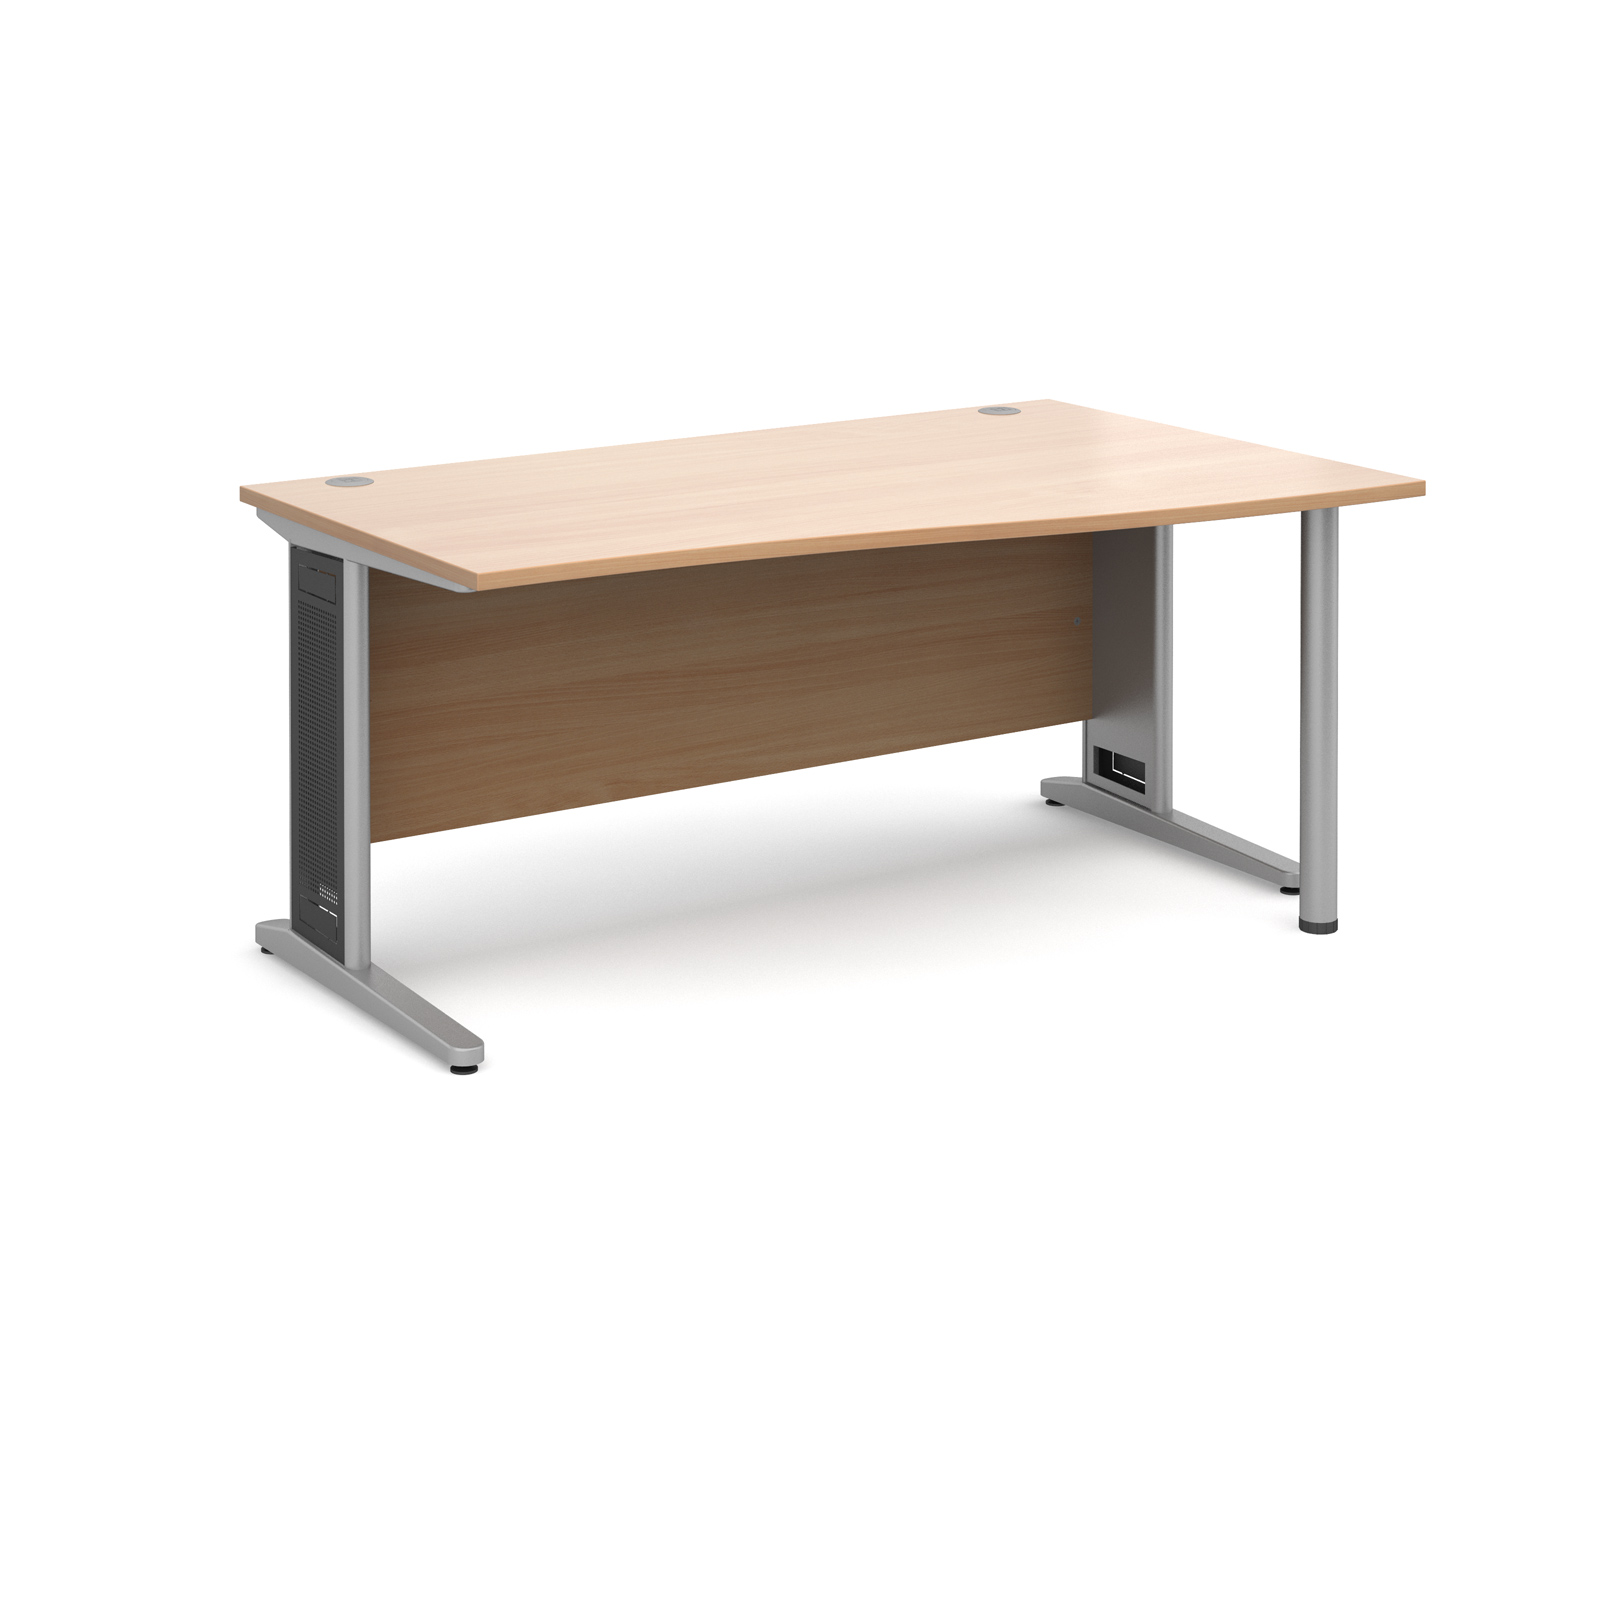 Largo right hand wave desk 1600mm - silver cantilever frame with removable grill, beech top